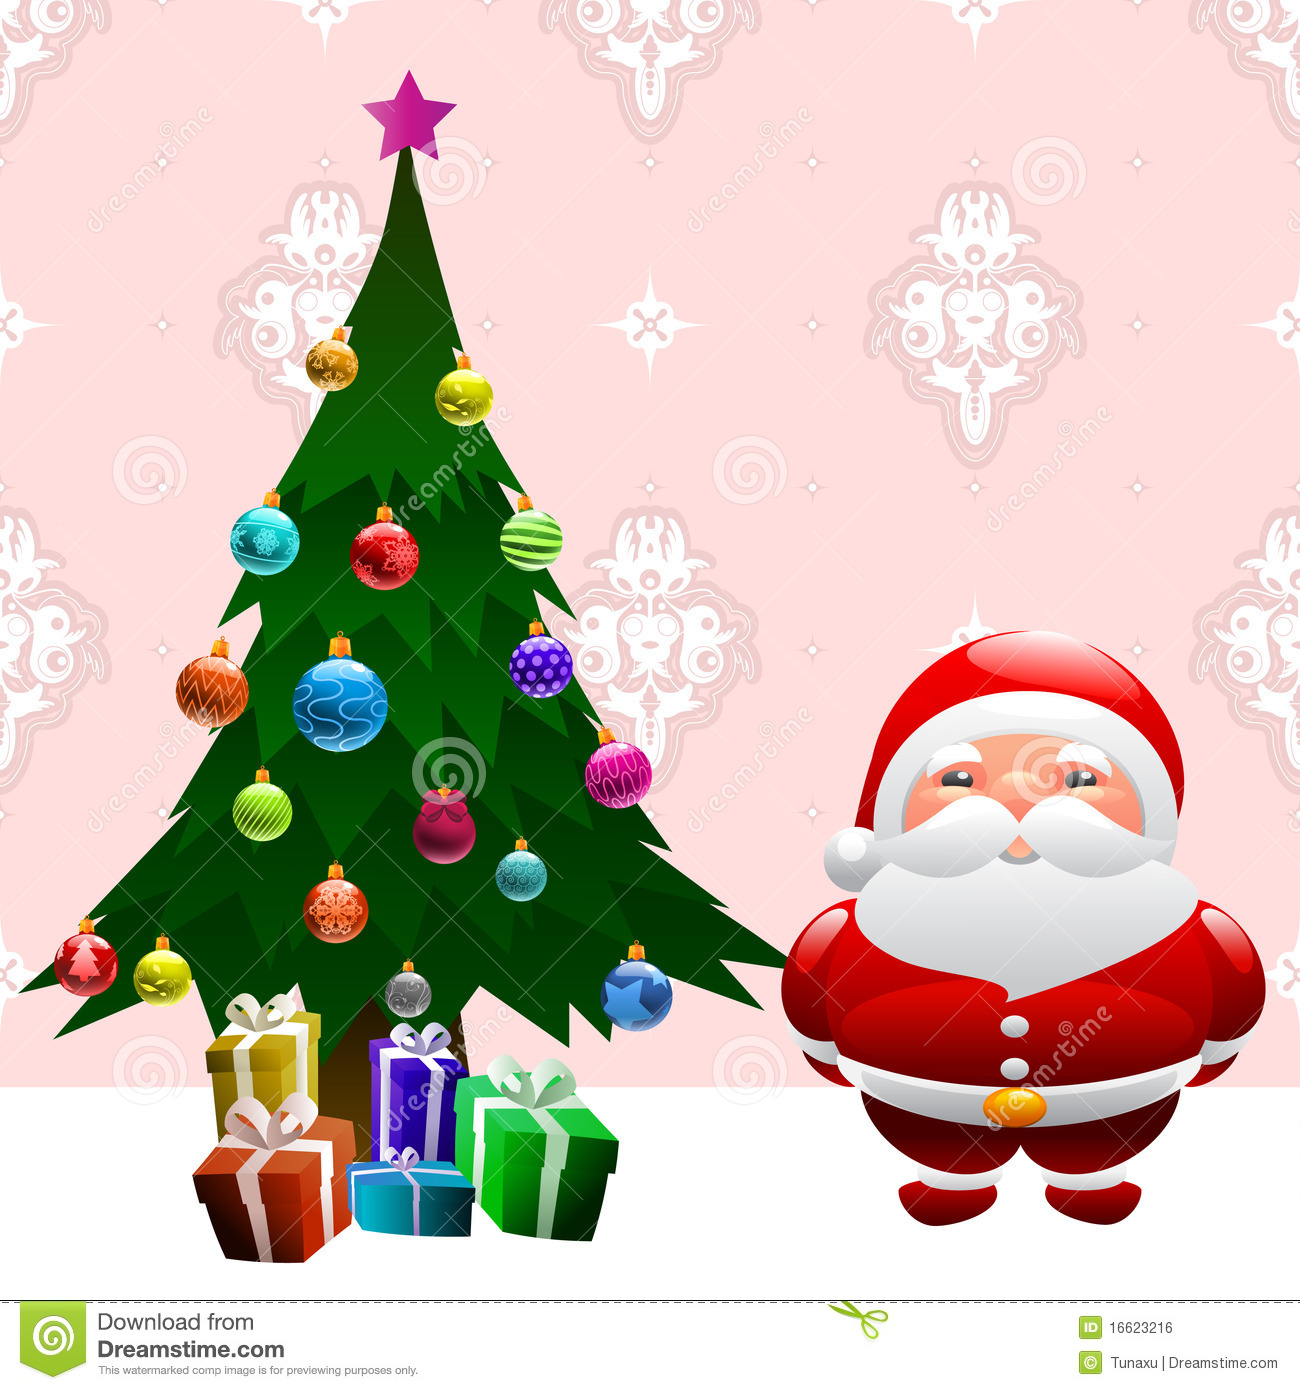 christmas tree and santa claus - Santa Claus Christmas Decorations